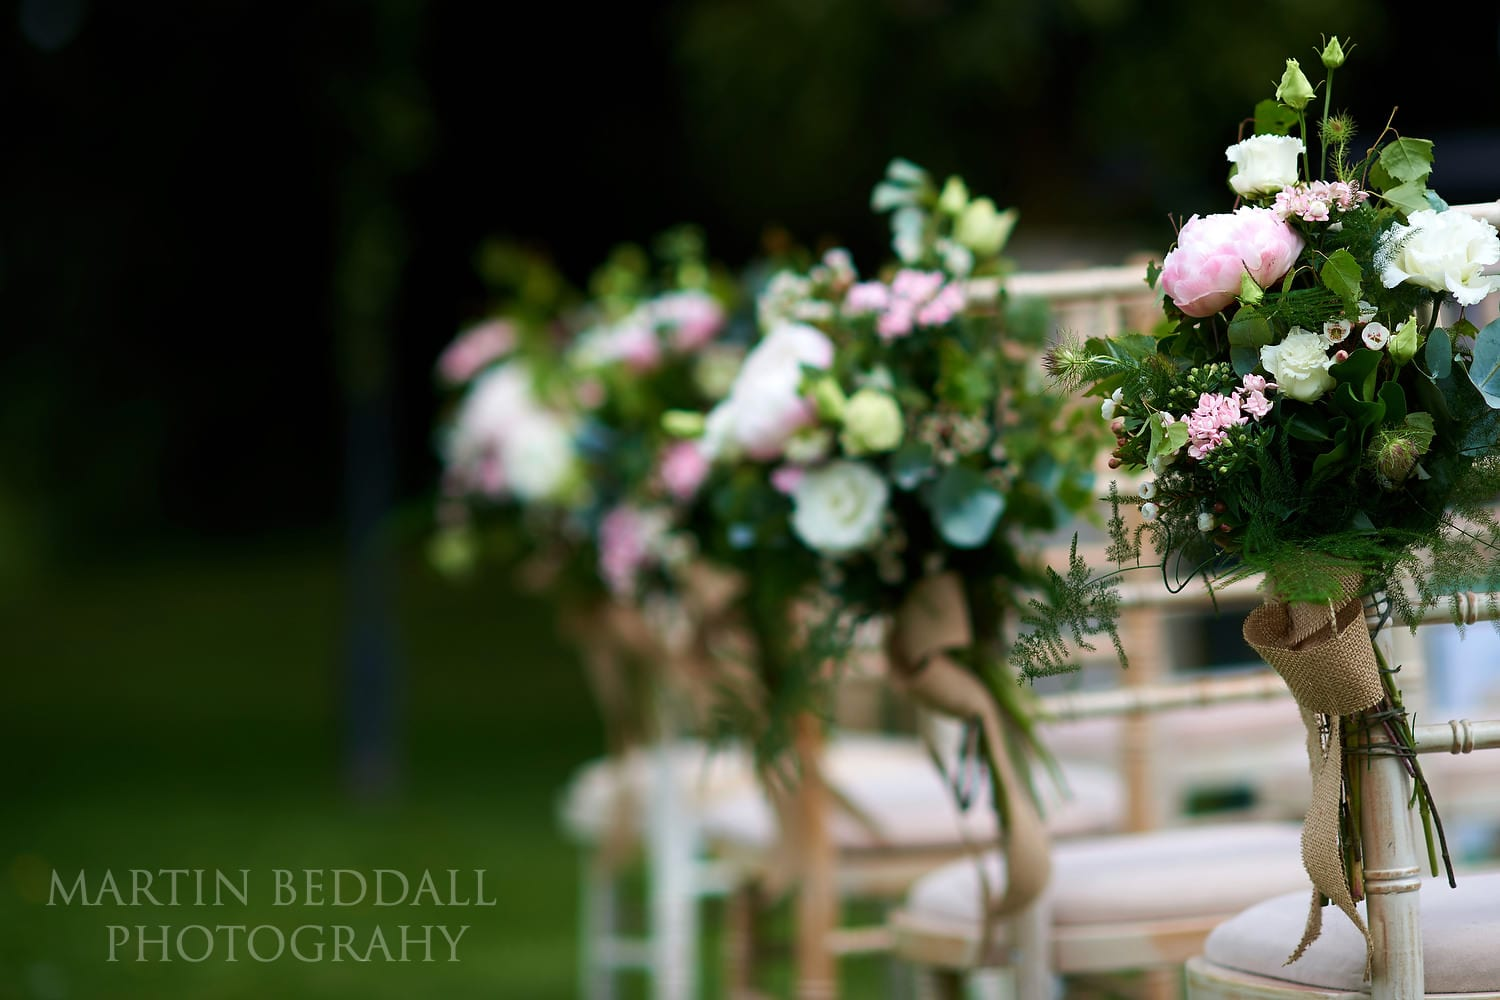 Flowers on the chairs